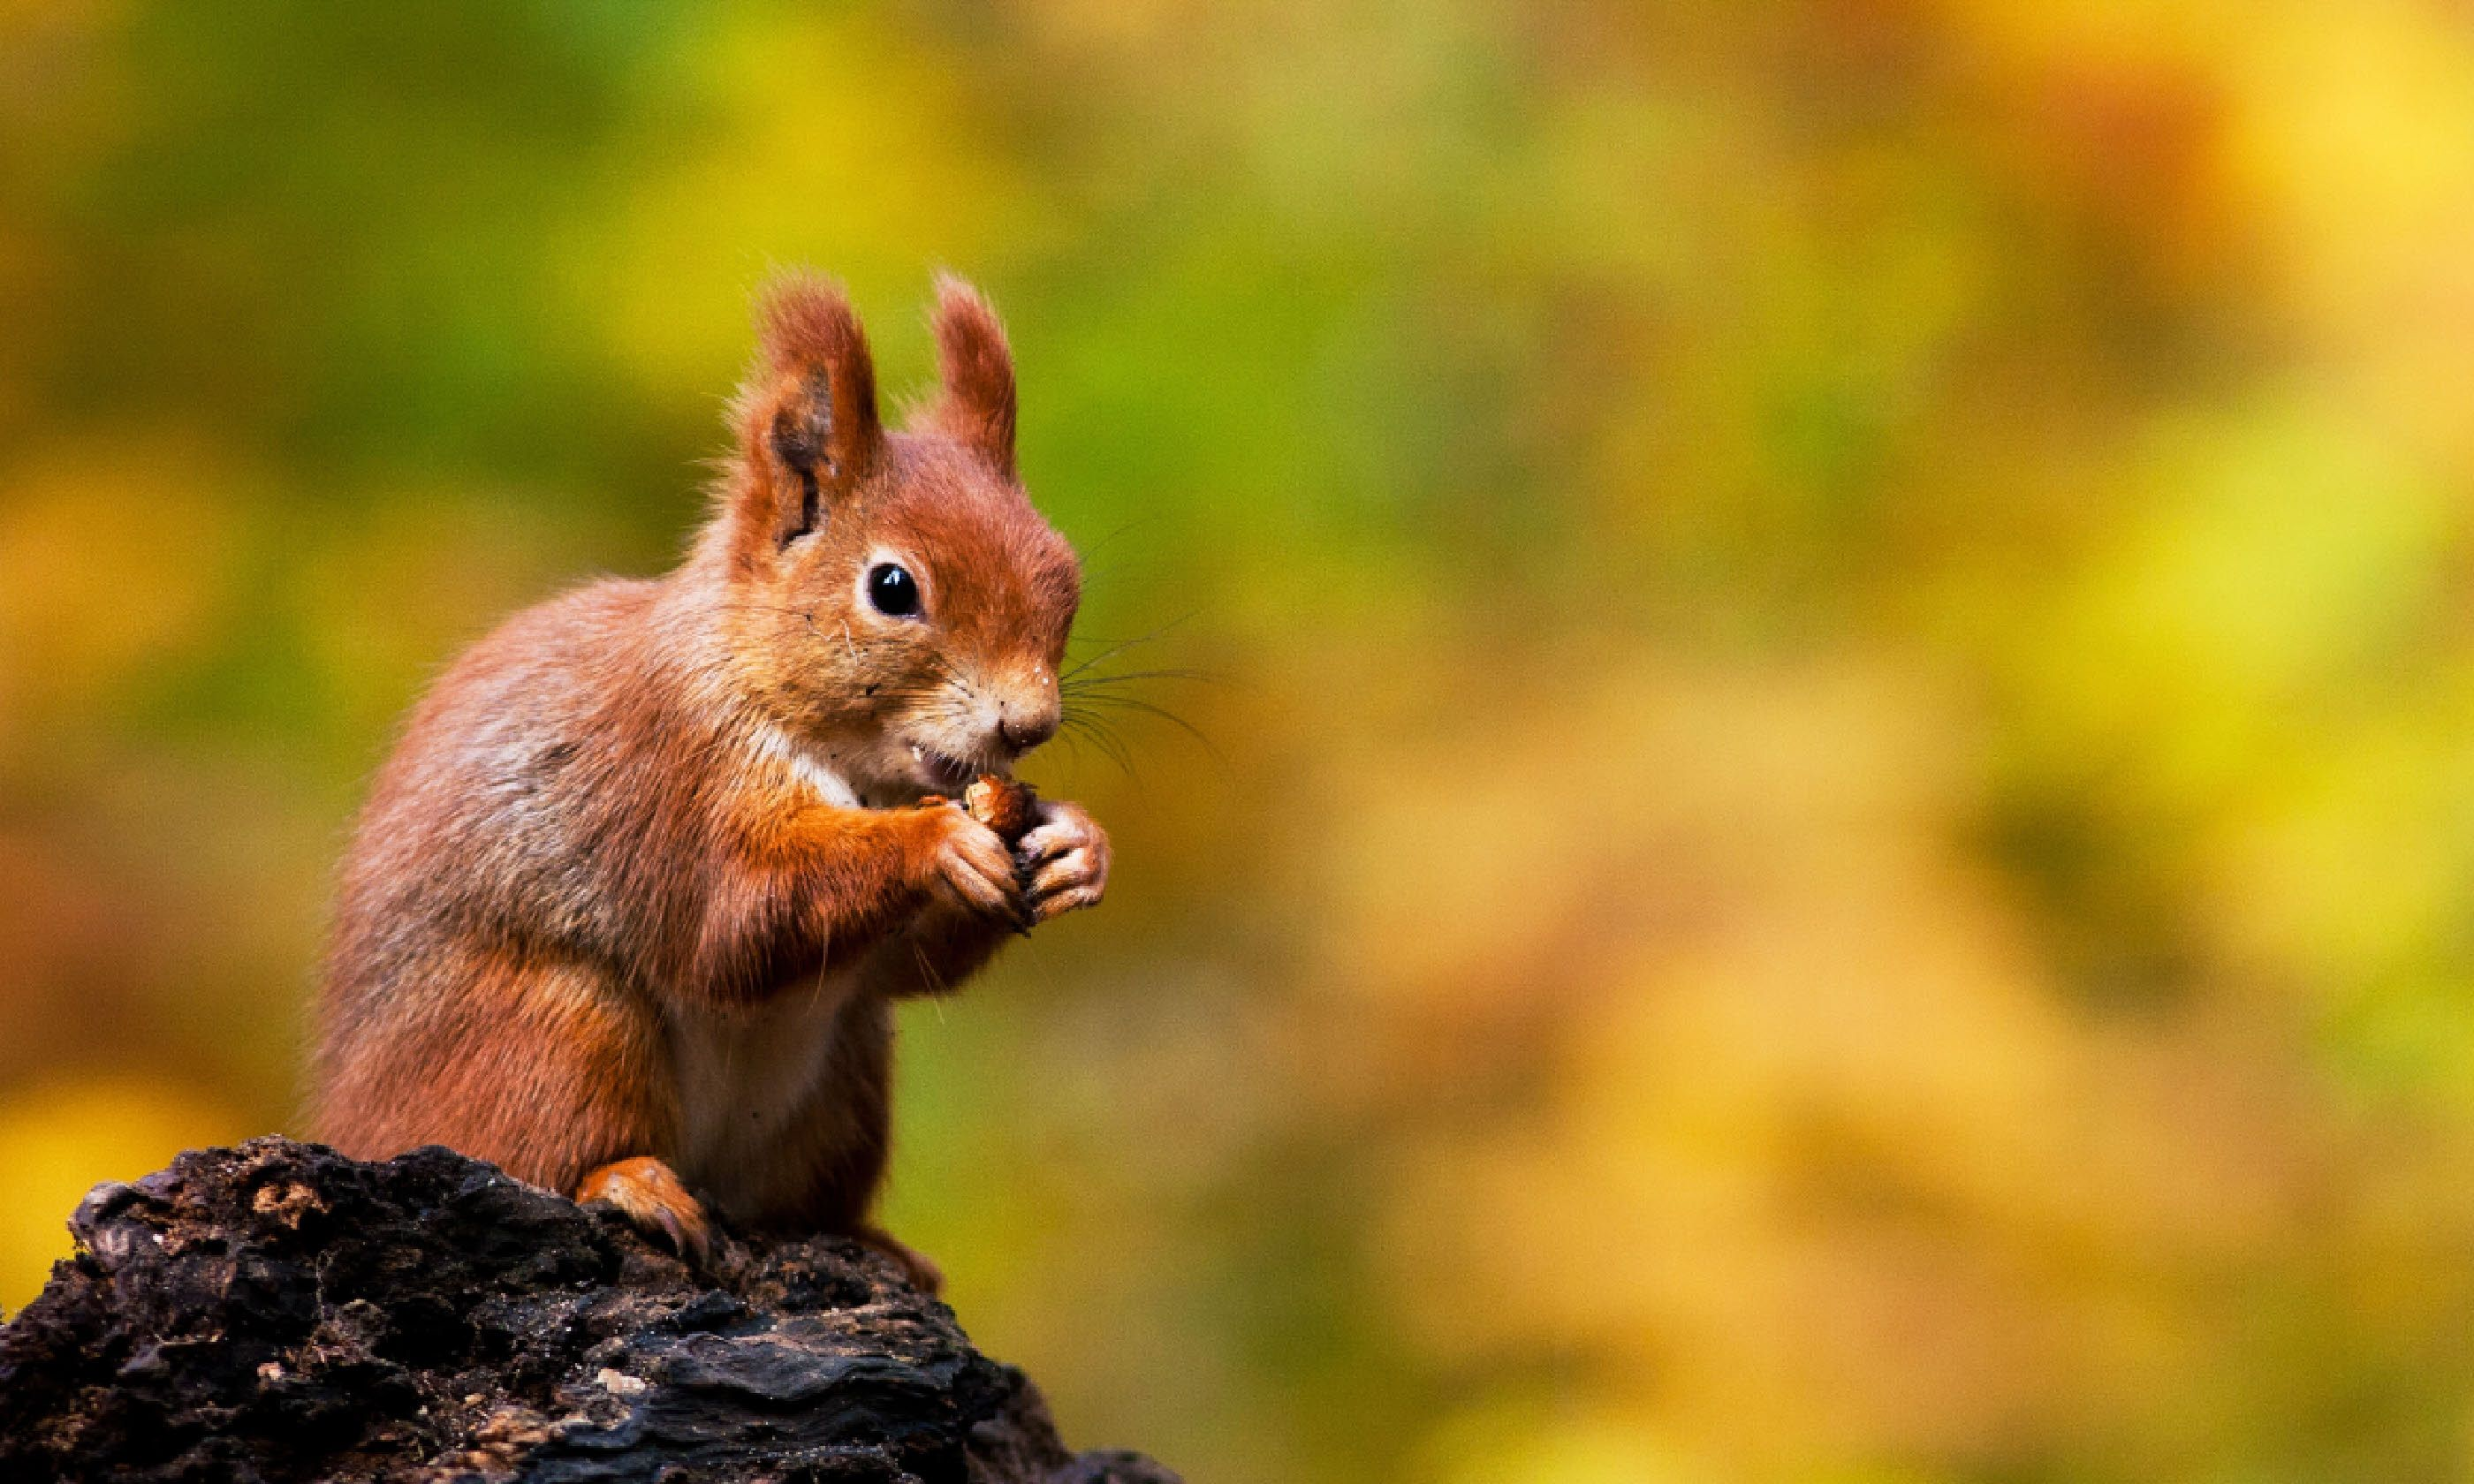 Squirrel (Shutterstock)